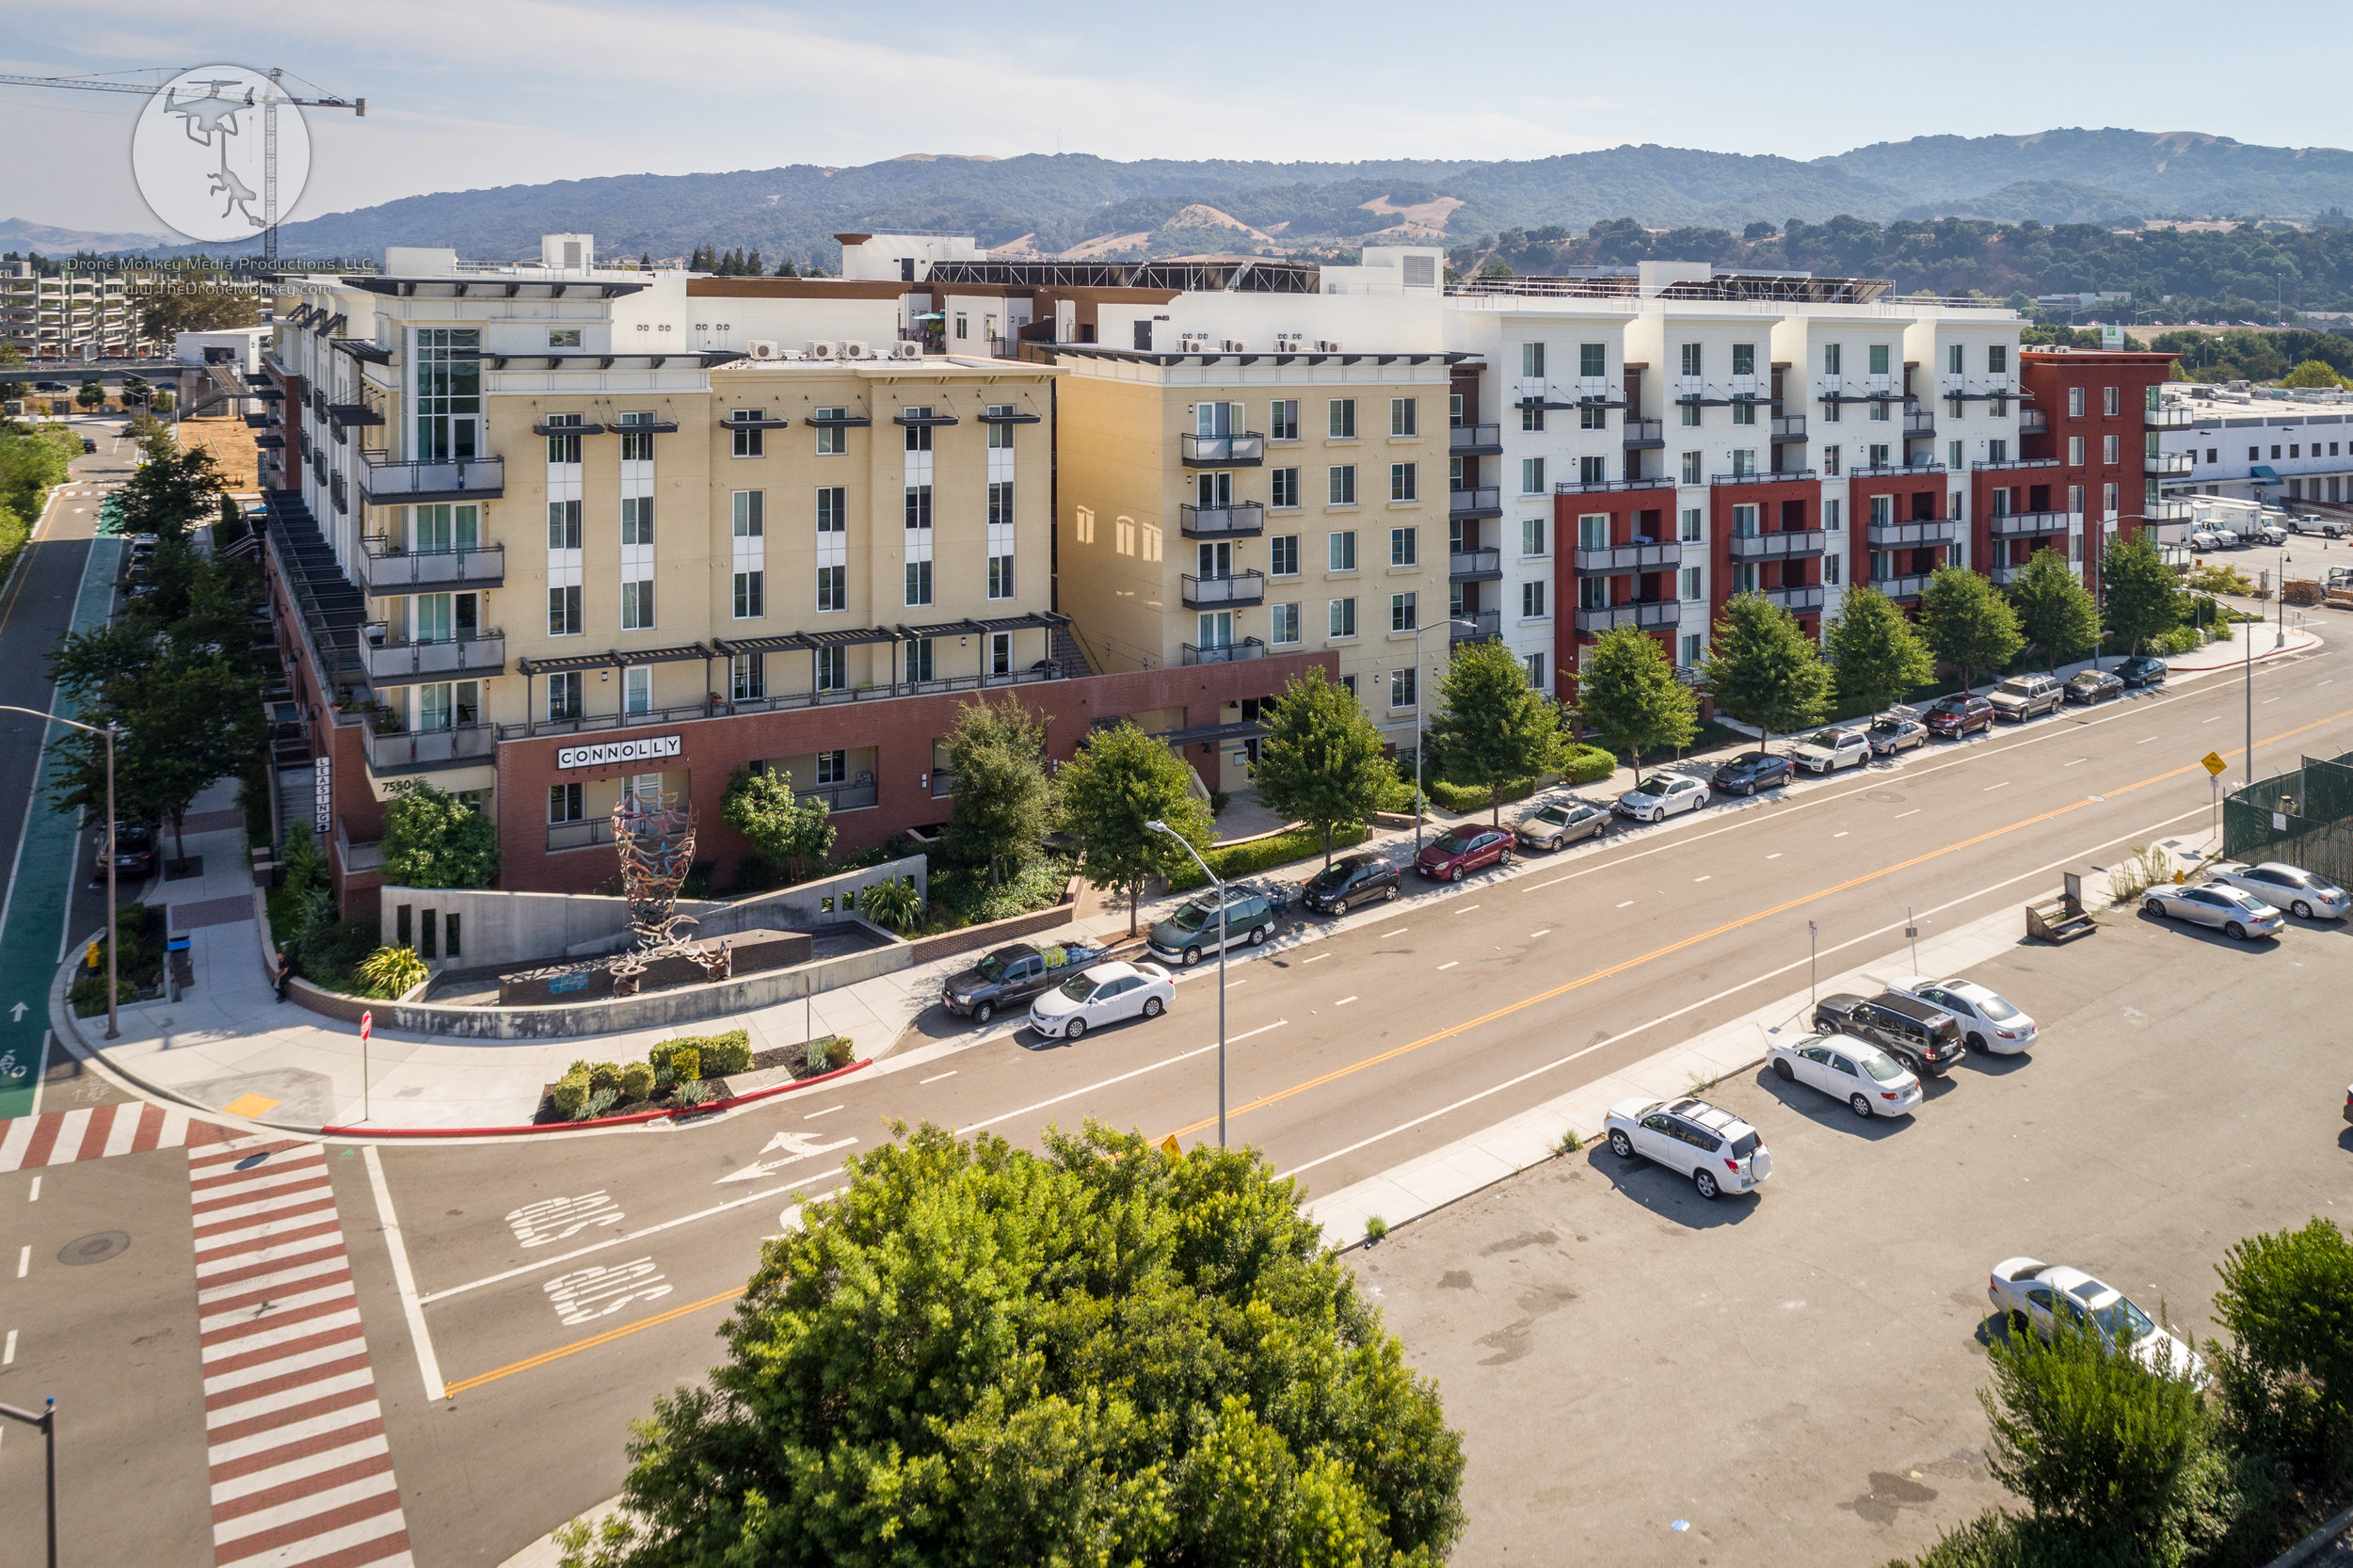 Connolly Station Apartment Homes, Dublin, CA